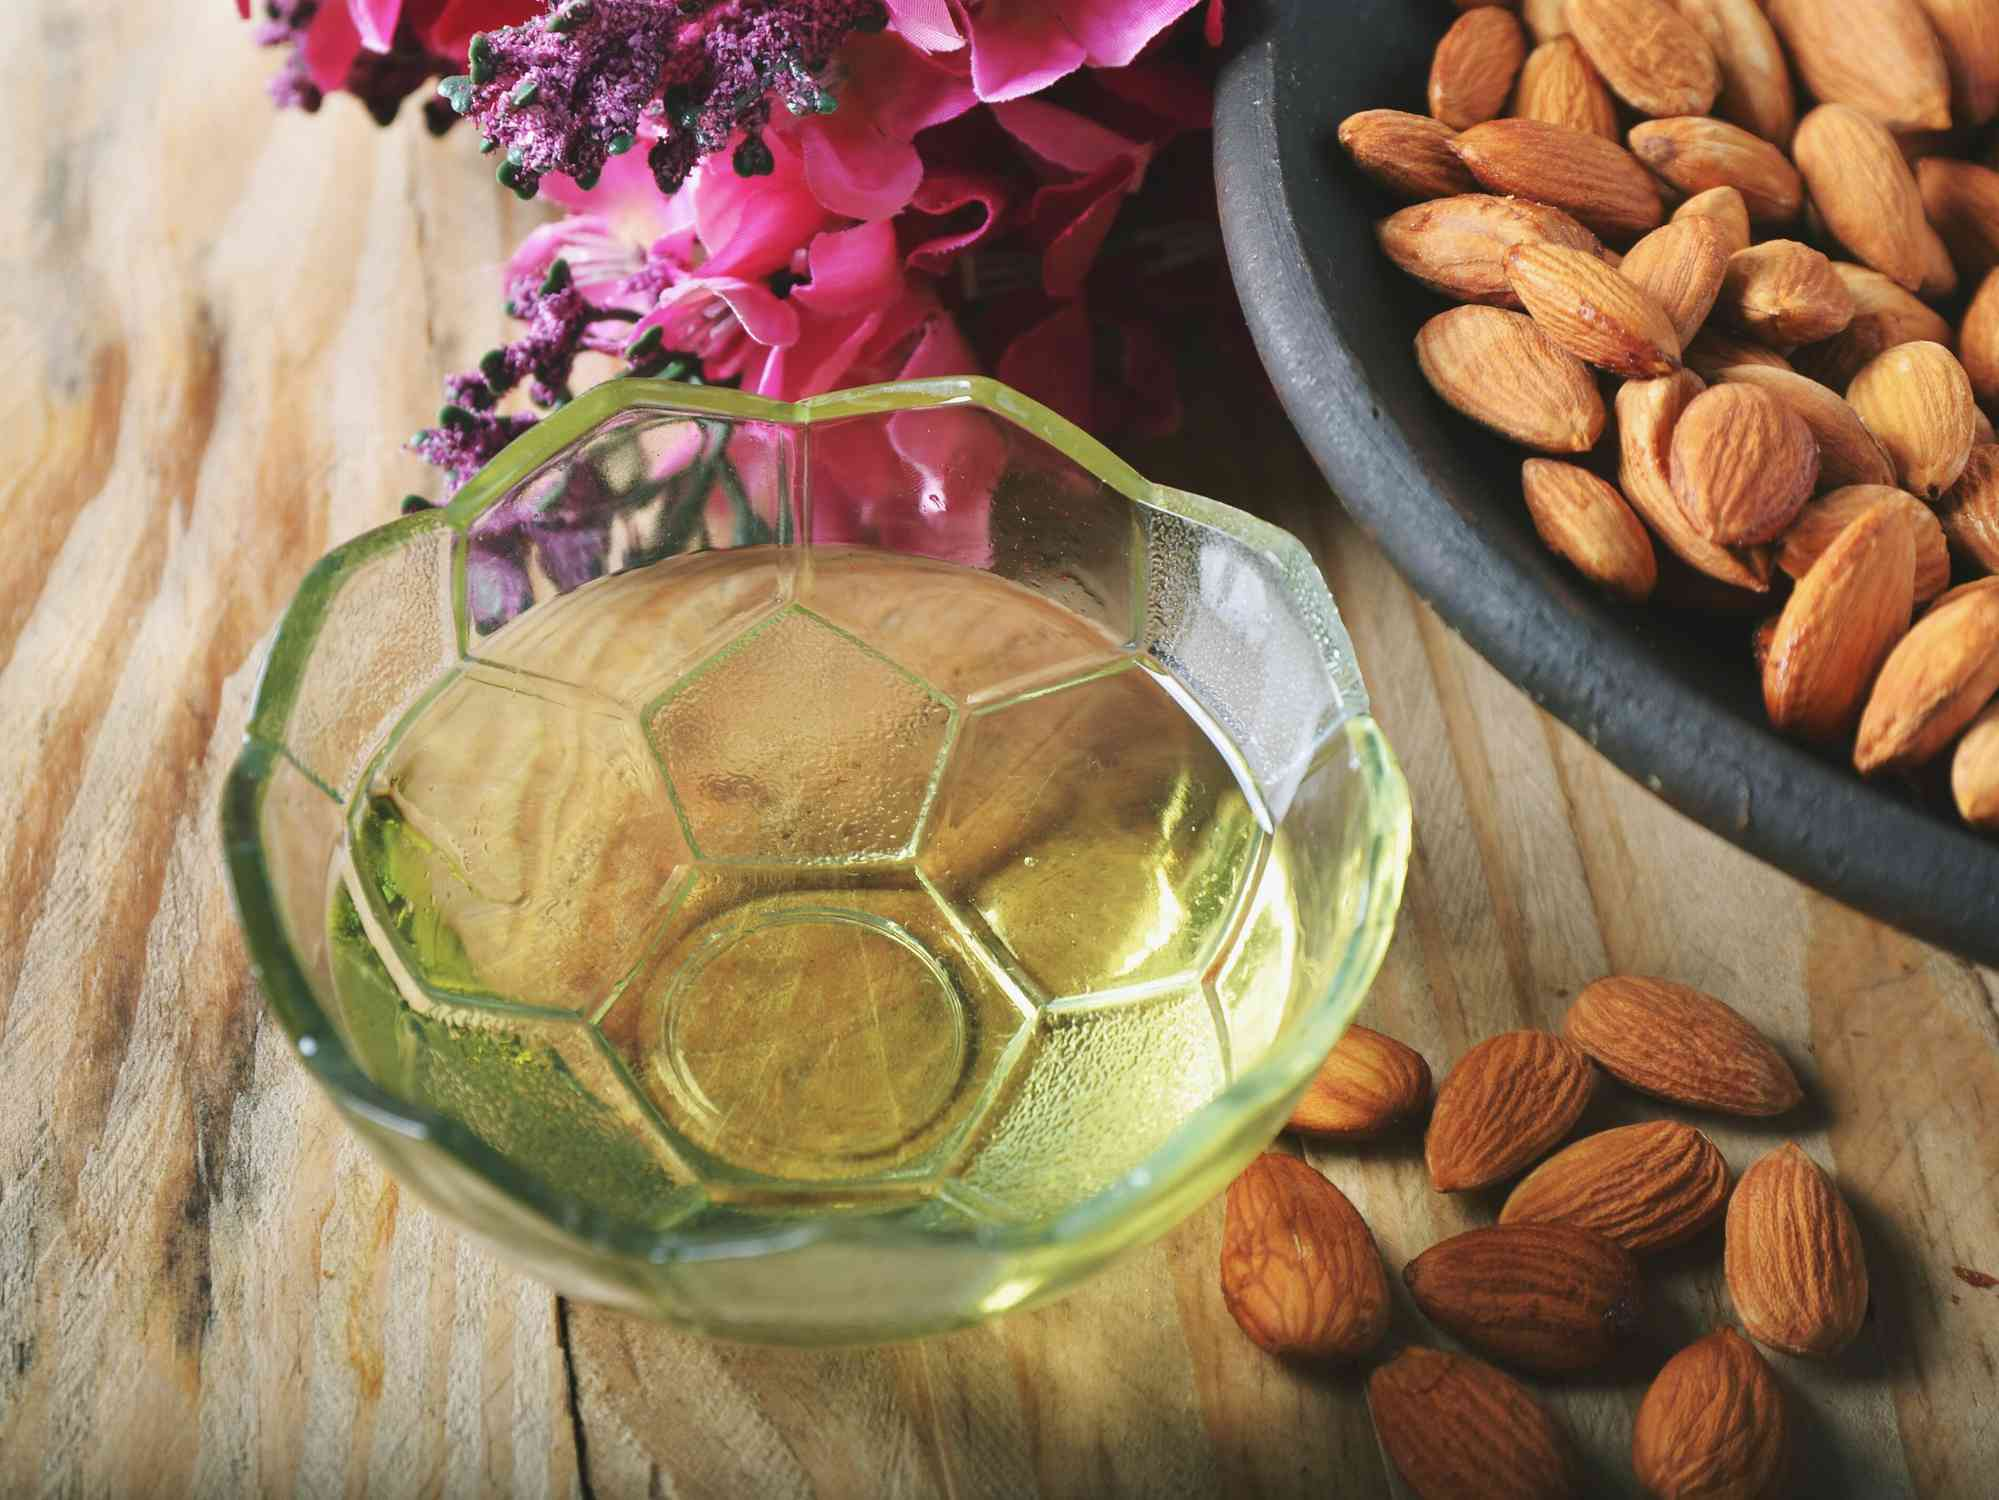 High Angle View Of Almonds And Oil In Bowl Over Table